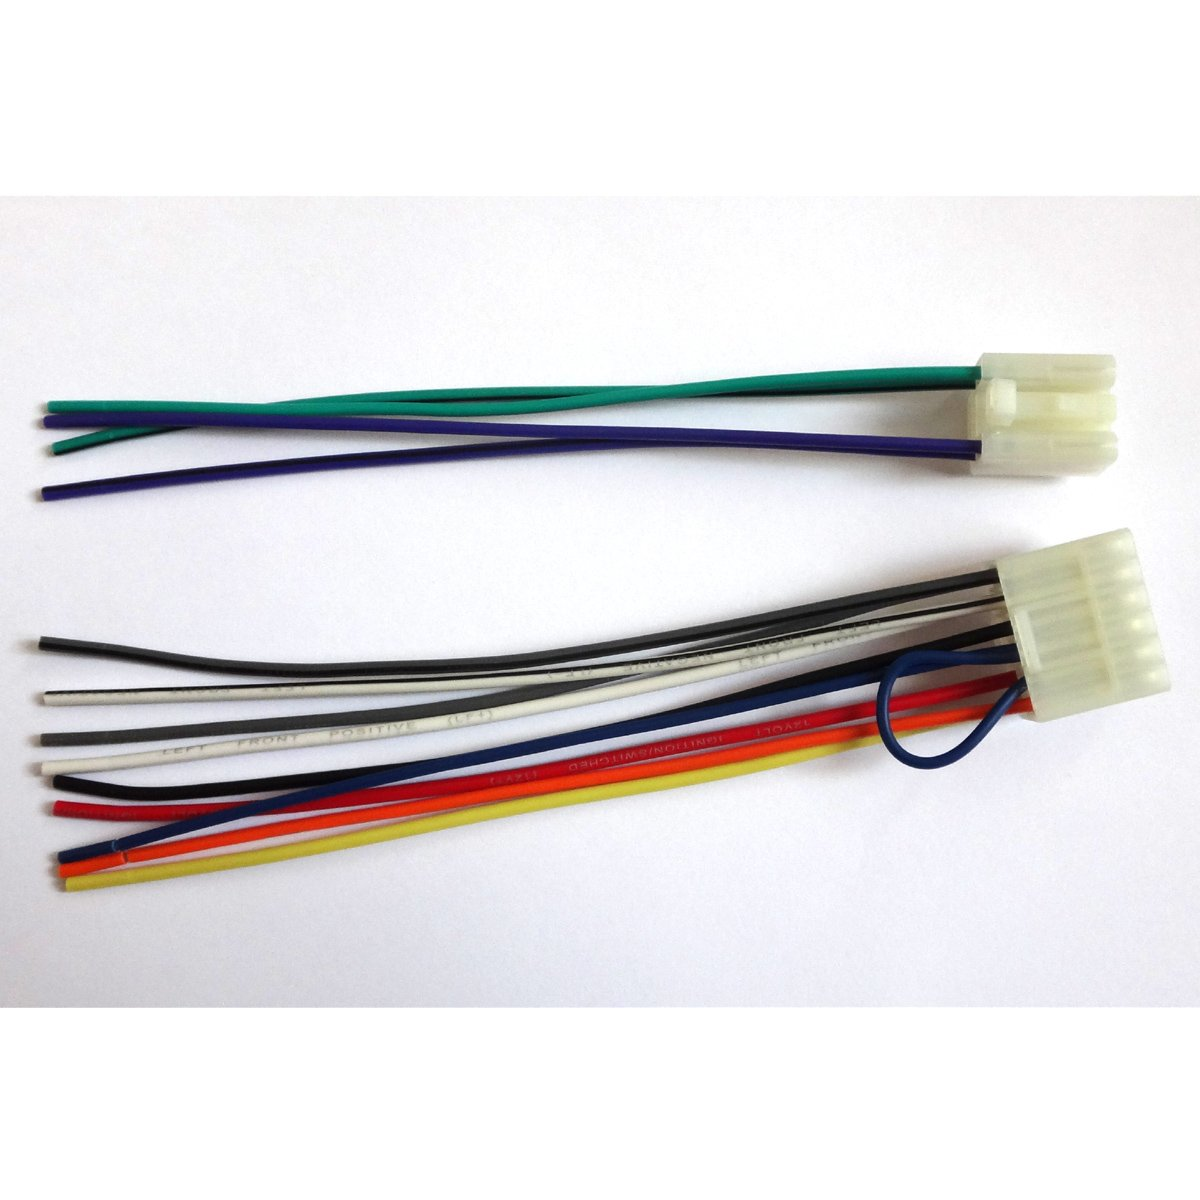 Amazon.com: For Radio Reverse Male Wire Wiring Harness Toyota ... on vue wiring harness, 4runner wiring harness, mr2 wiring harness, camry wiring harness, enclave wiring harness, tundra wiring harness, fj cruiser wiring harness, land cruiser wiring harness, avalon wiring harness, civic wiring harness,